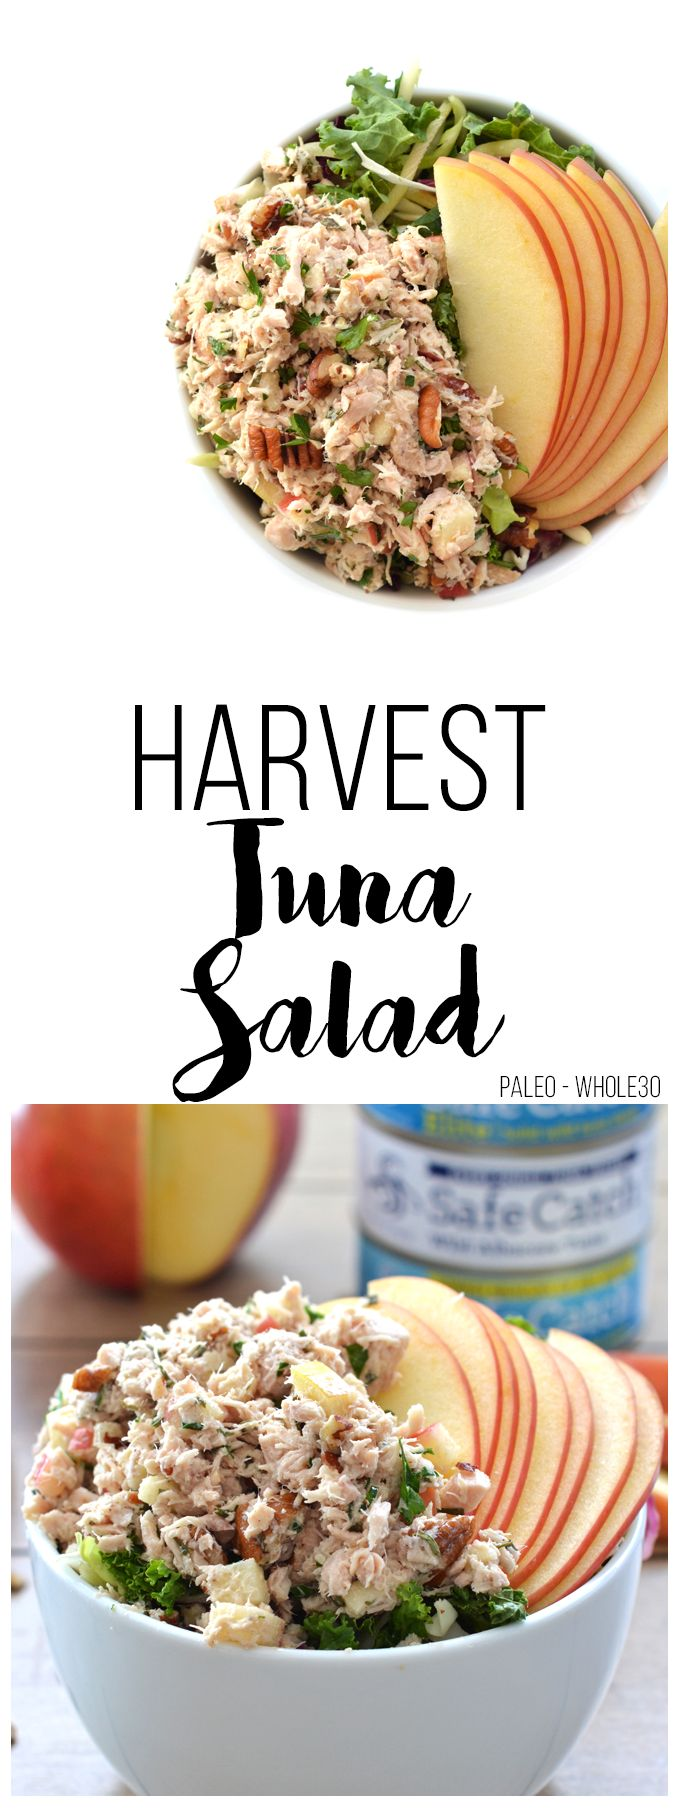 This Harvest Tuna Salad is the perfect quick meal for lunch or dinner! It is paleo, whole30 and full of fall flavors!